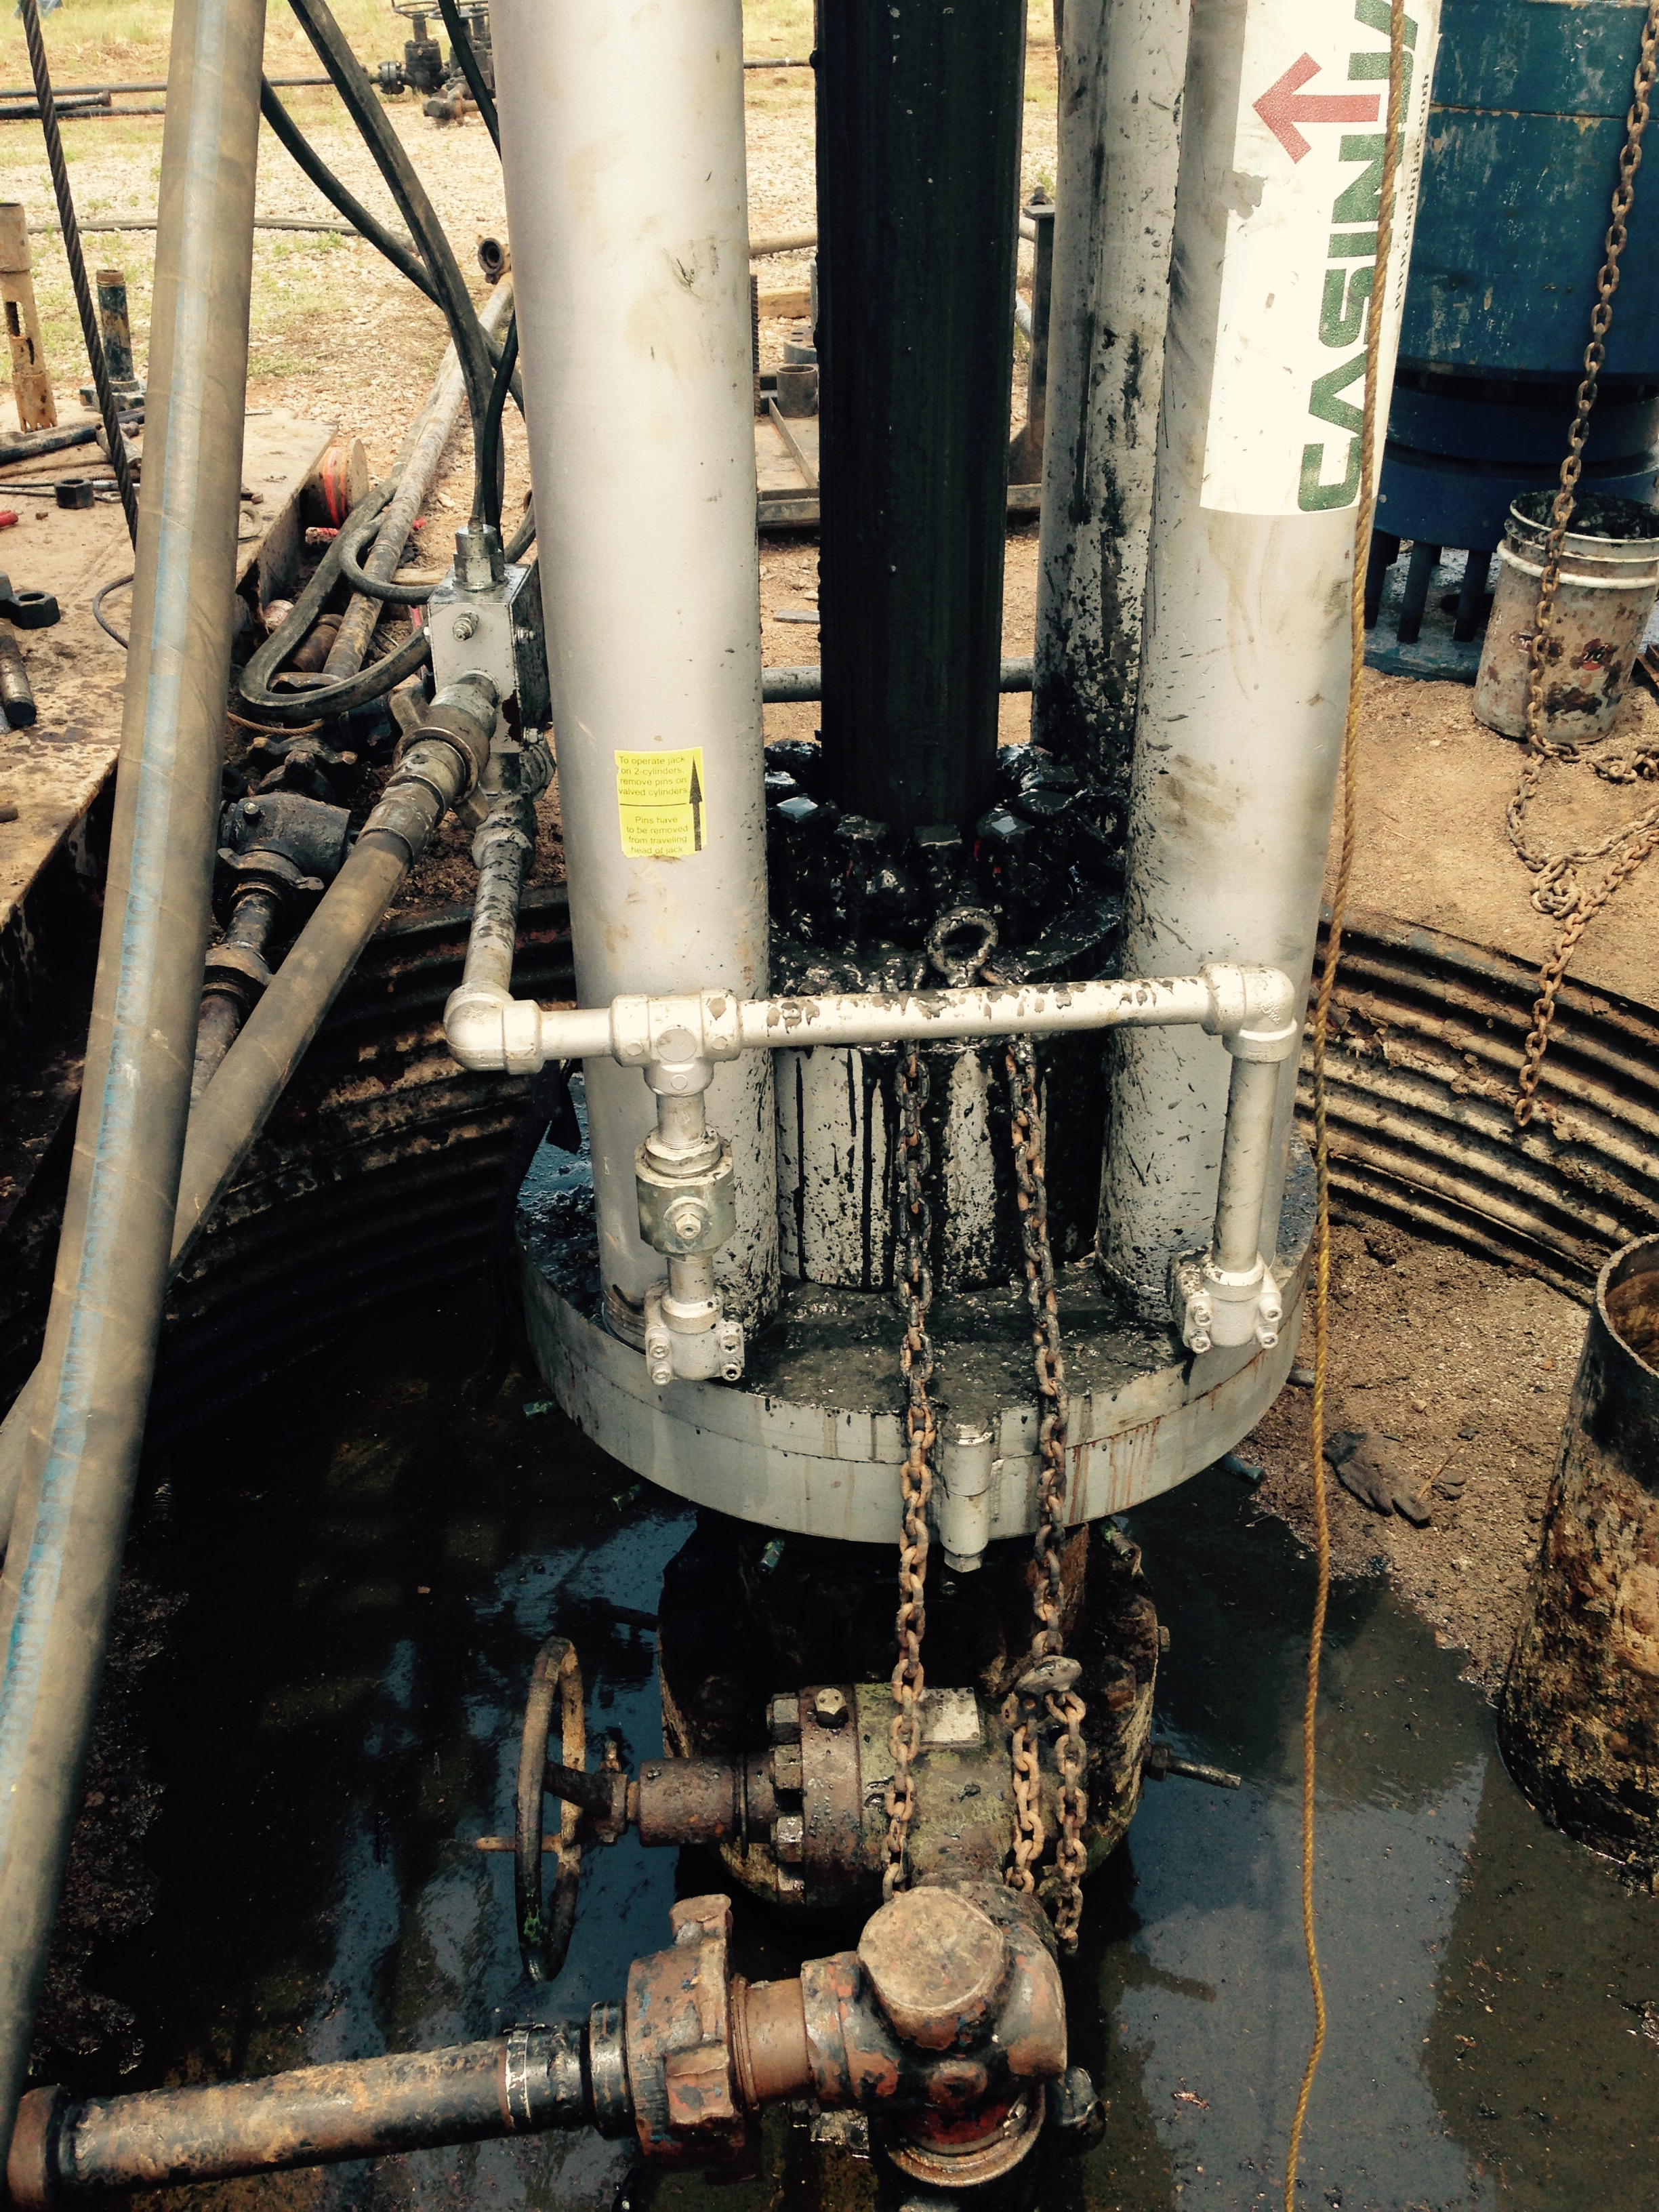 MODEL 282 CASING JACK FLANGE MOUNTED IN SHALLOW CELLAR